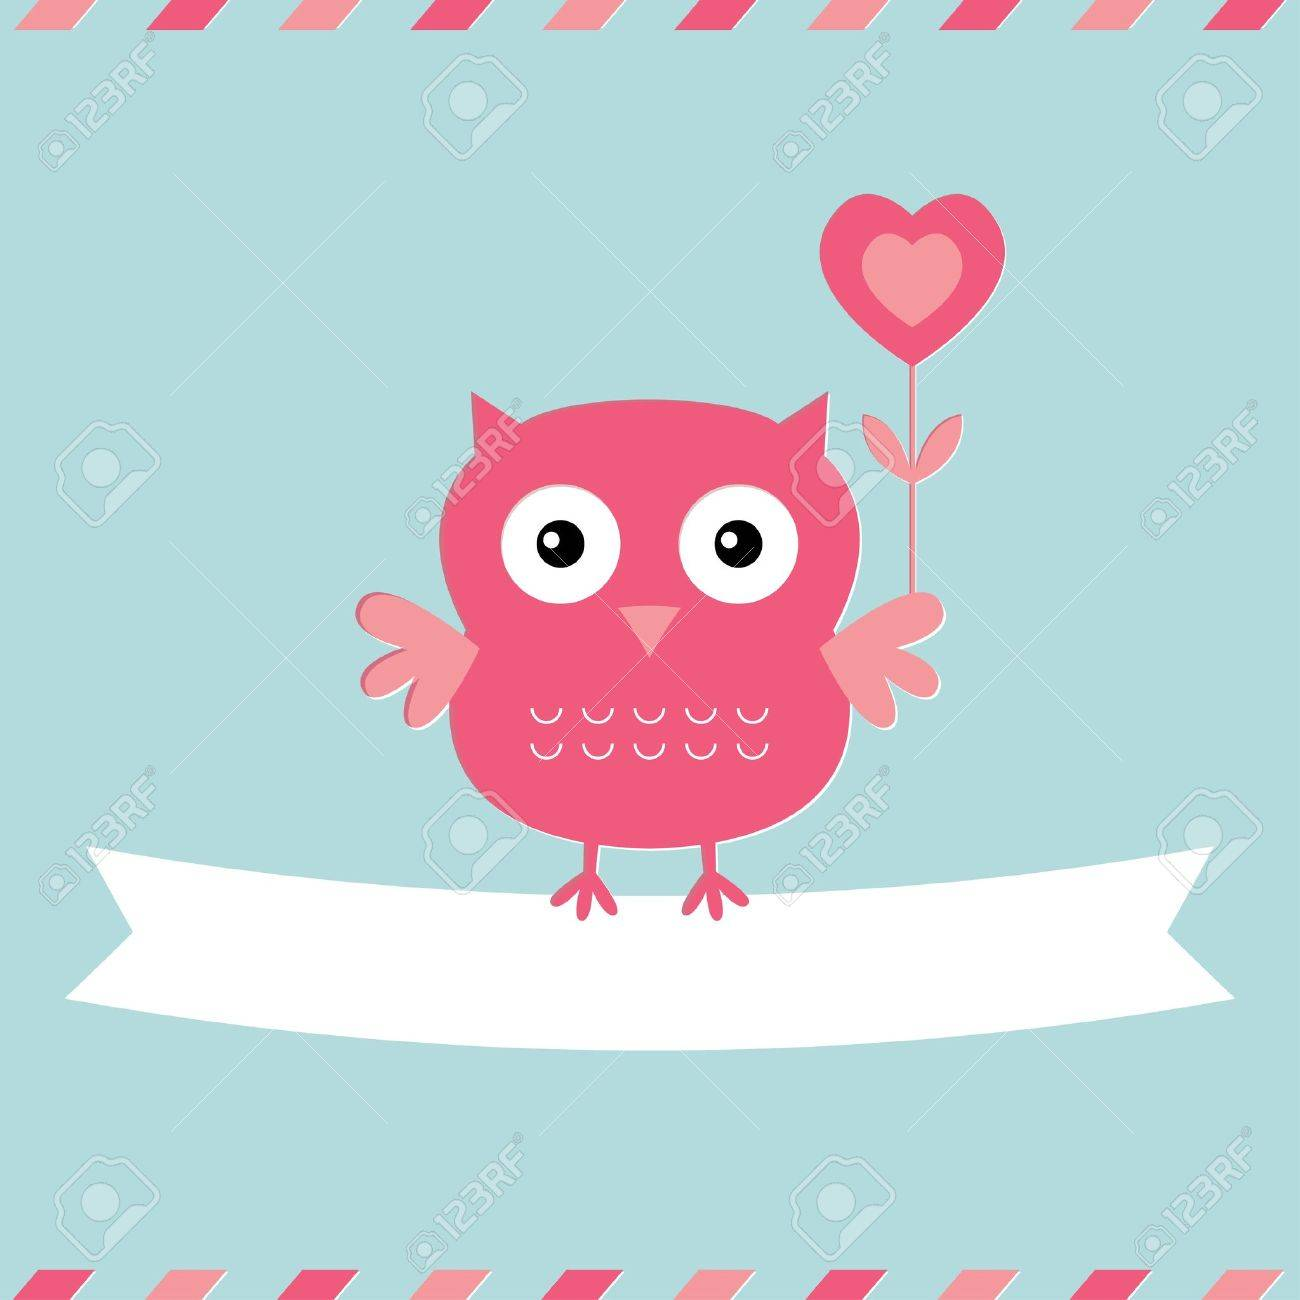 Cute Owl Valentine S Day Card Royalty Free Cliparts Vectors And